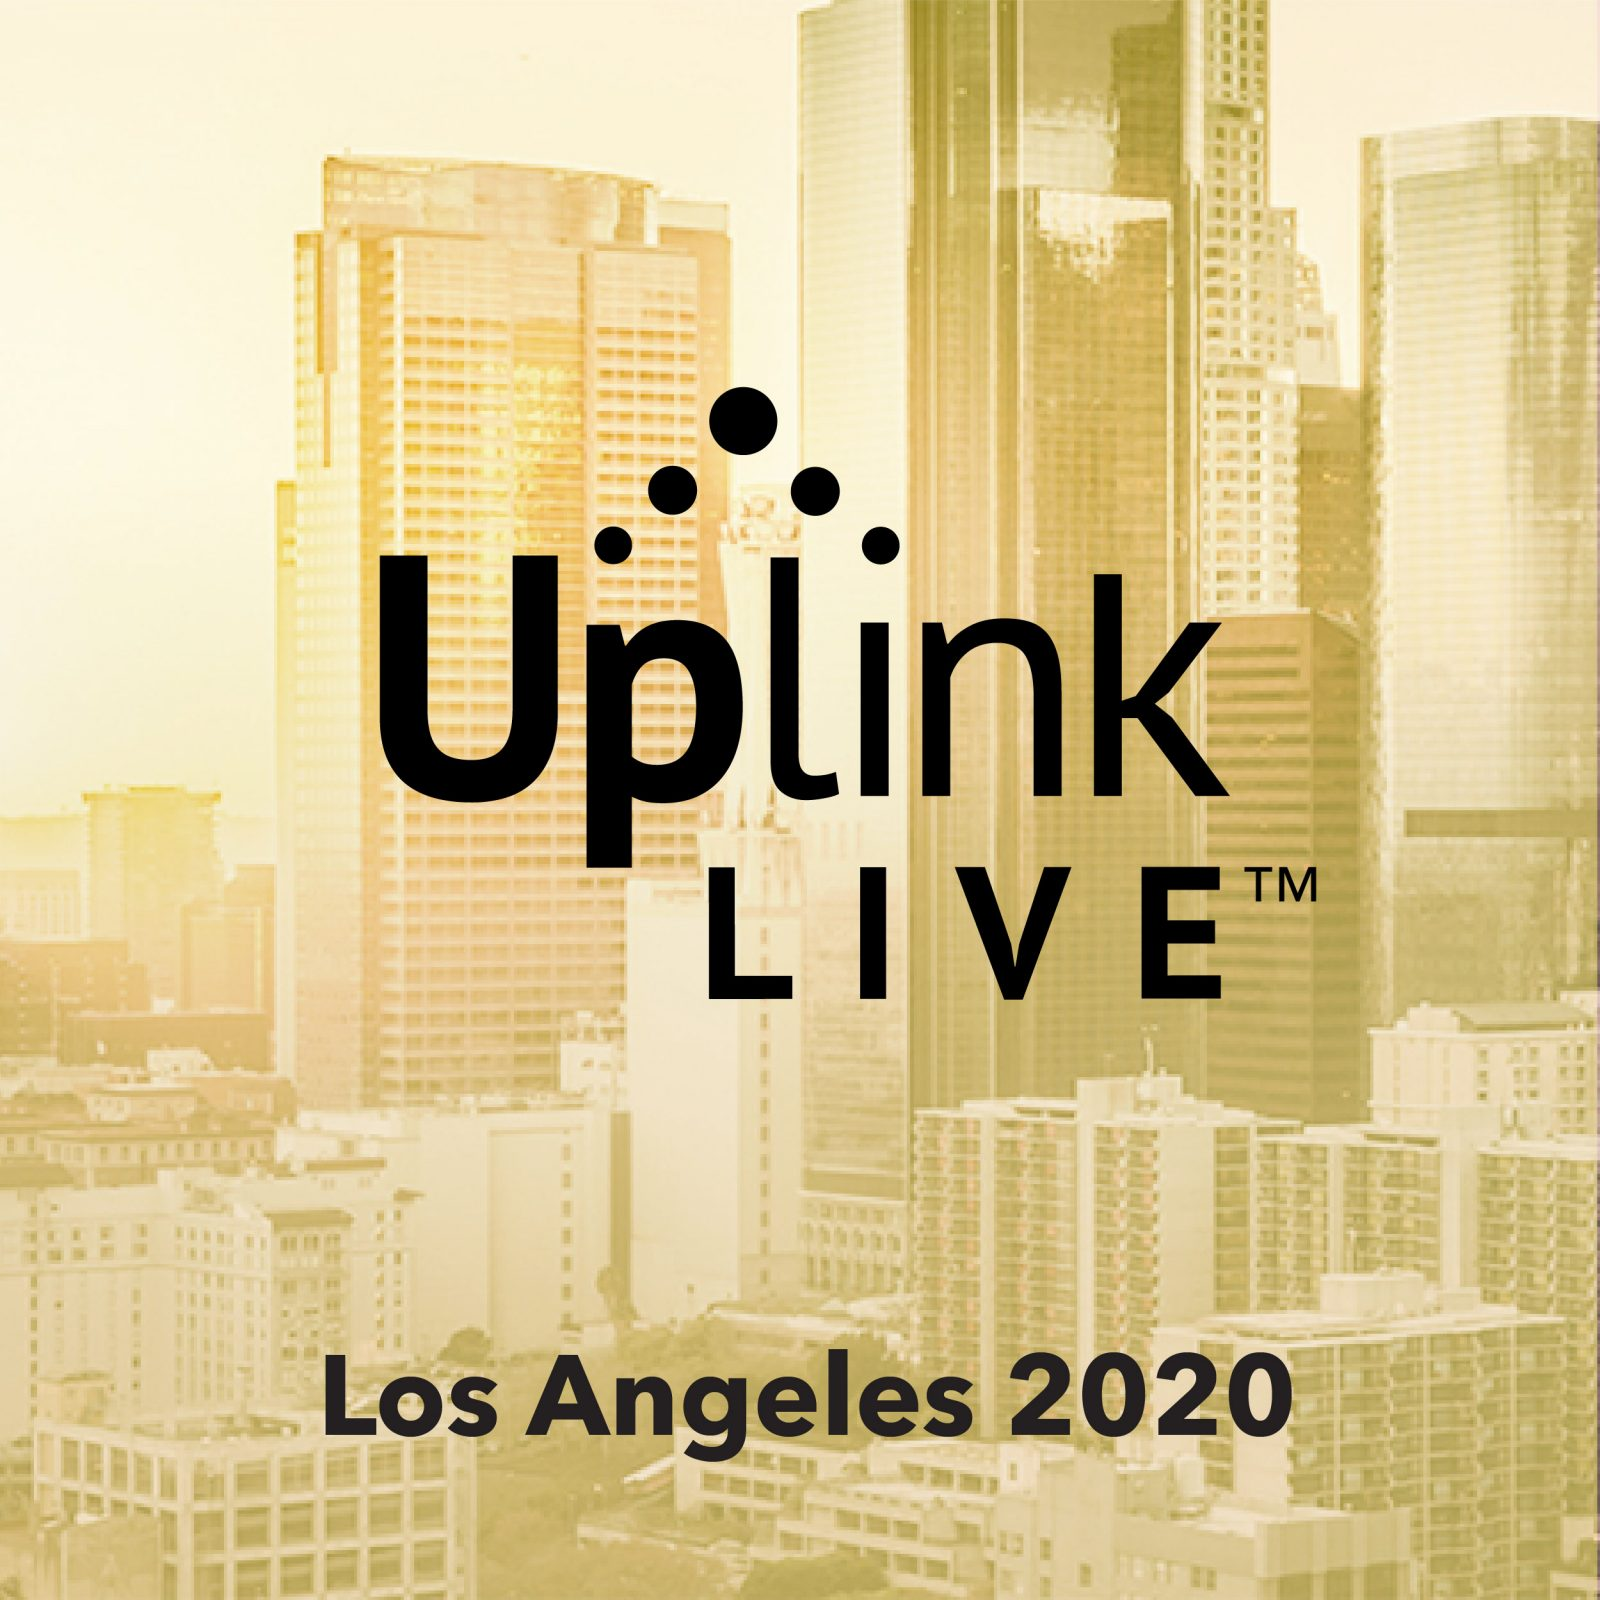 Meet Our Uplink Live LA 2020 Exhibitor Lineup!